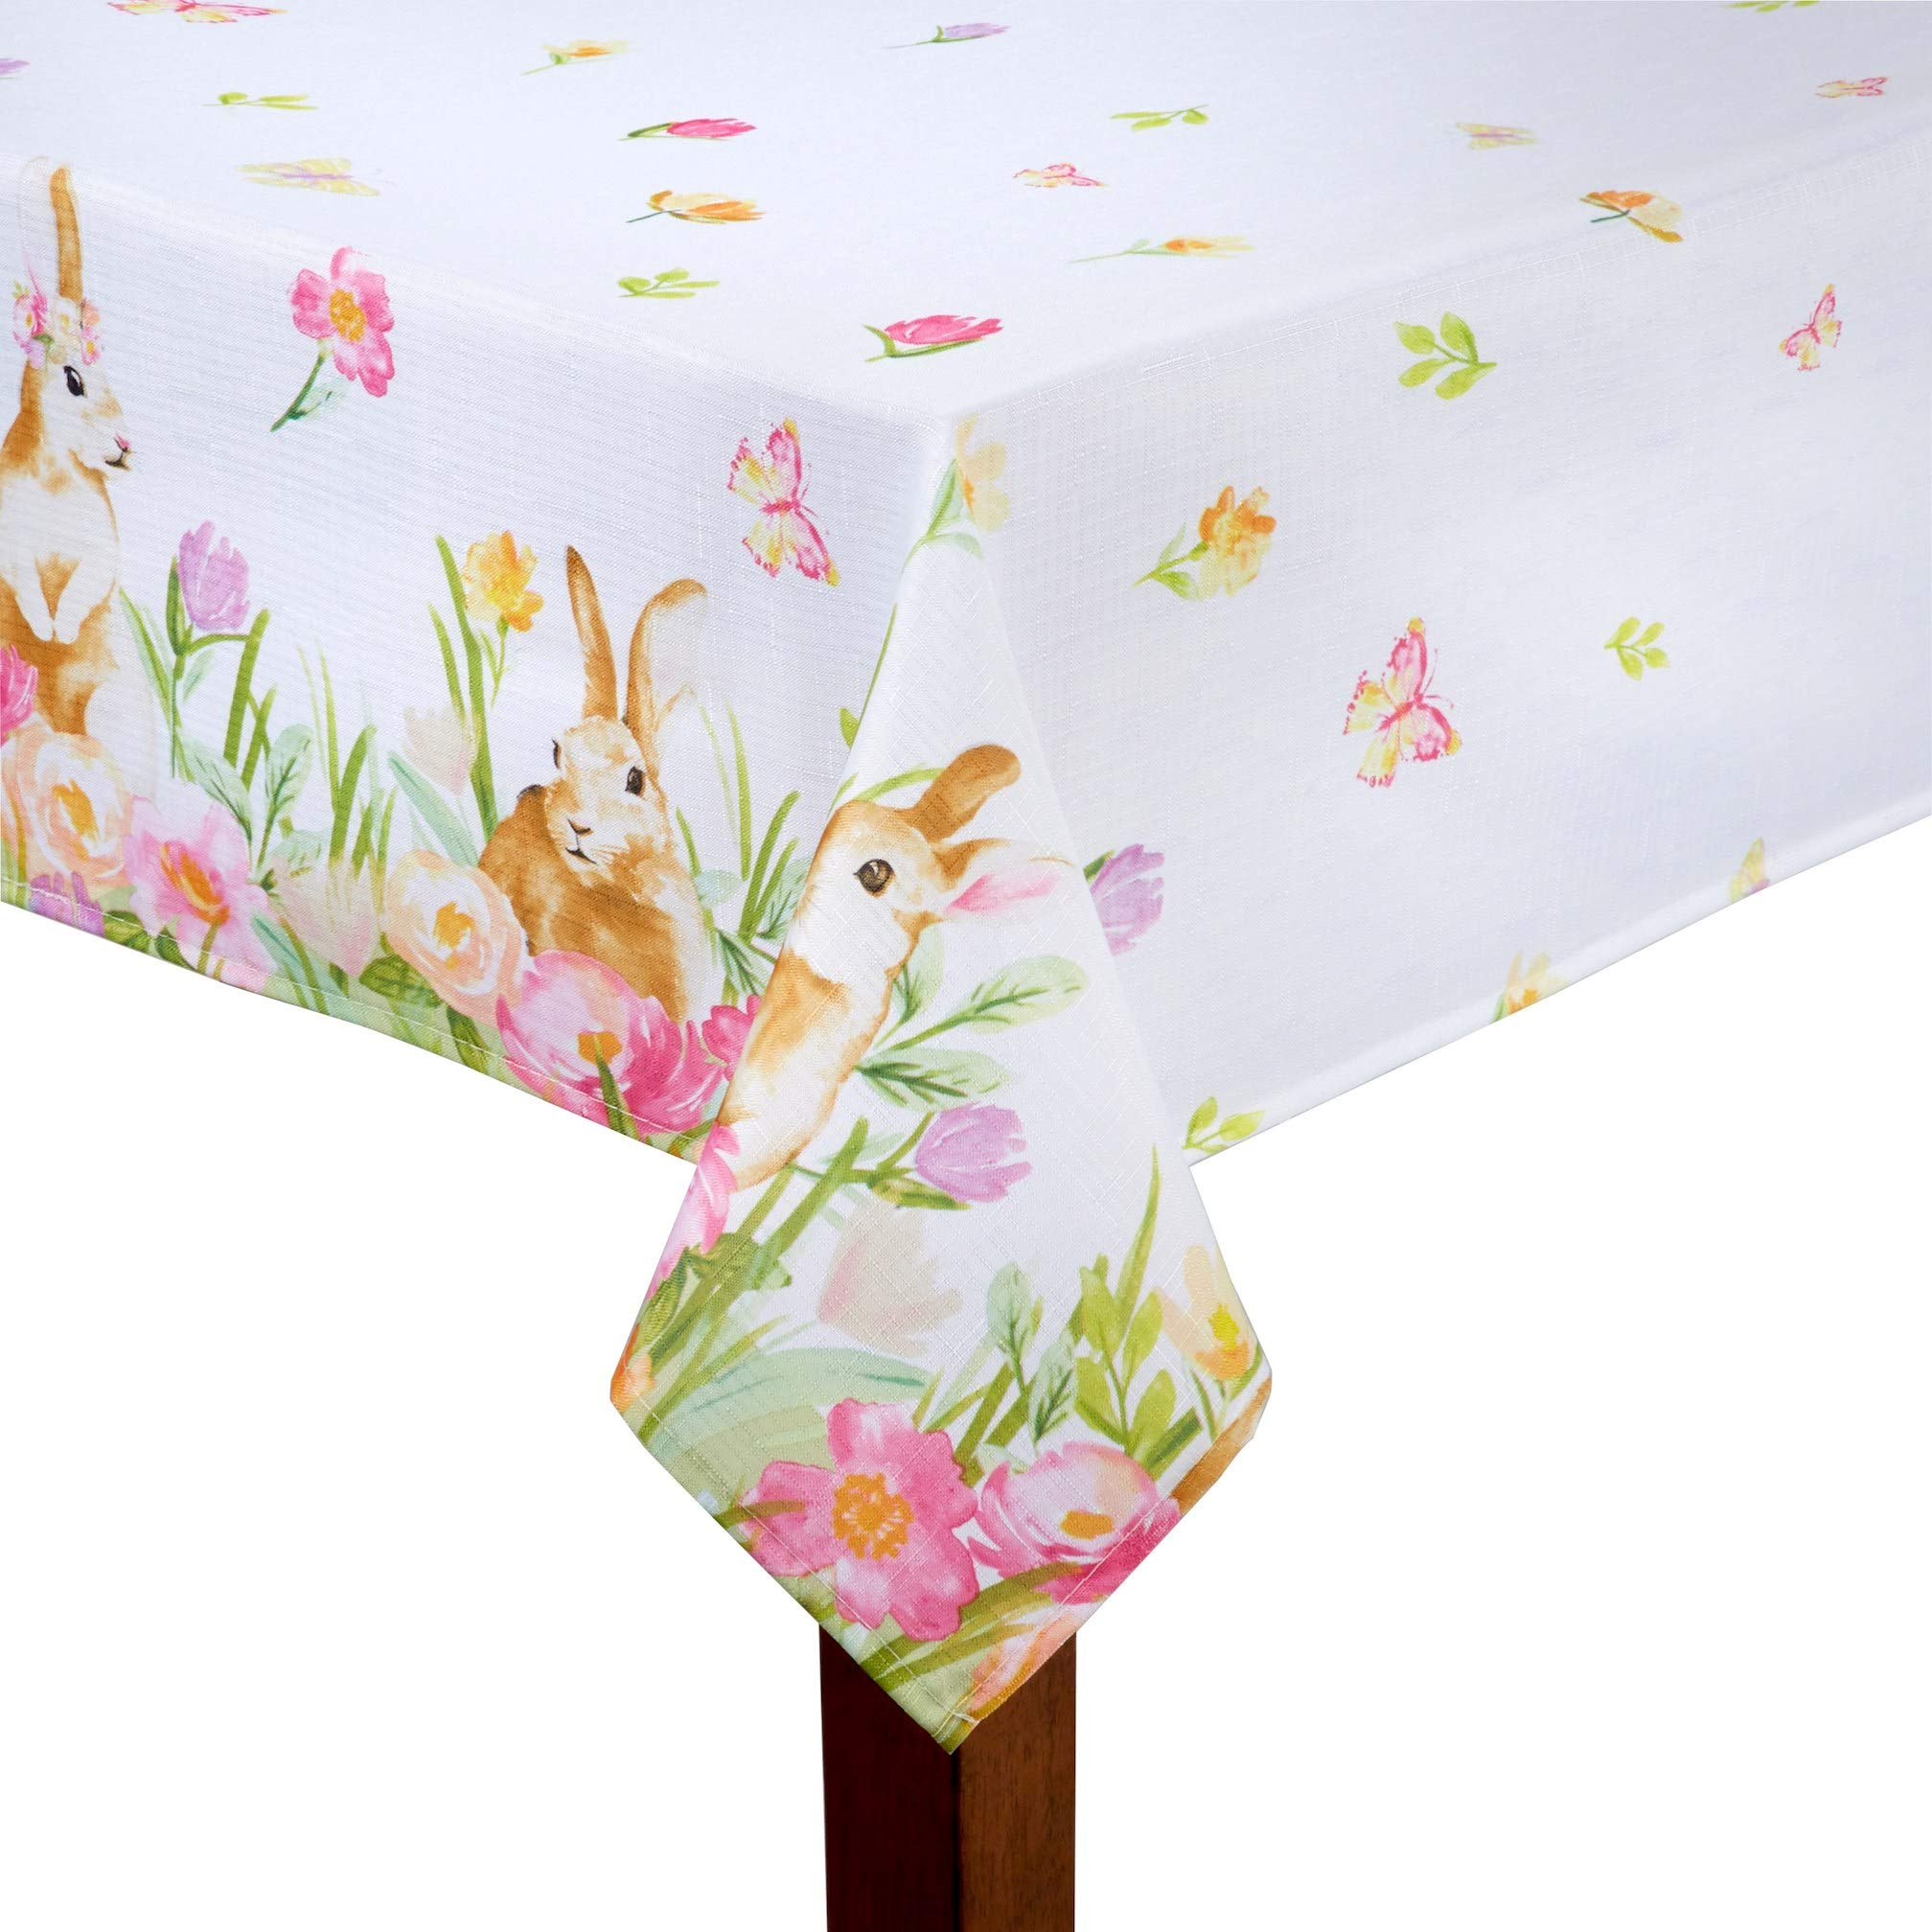 Bunnies at Play Easter Pastel Print White Background Floral Polyester Fabric Tablecloth (60'' x 102'' Rectangle/Oblong)